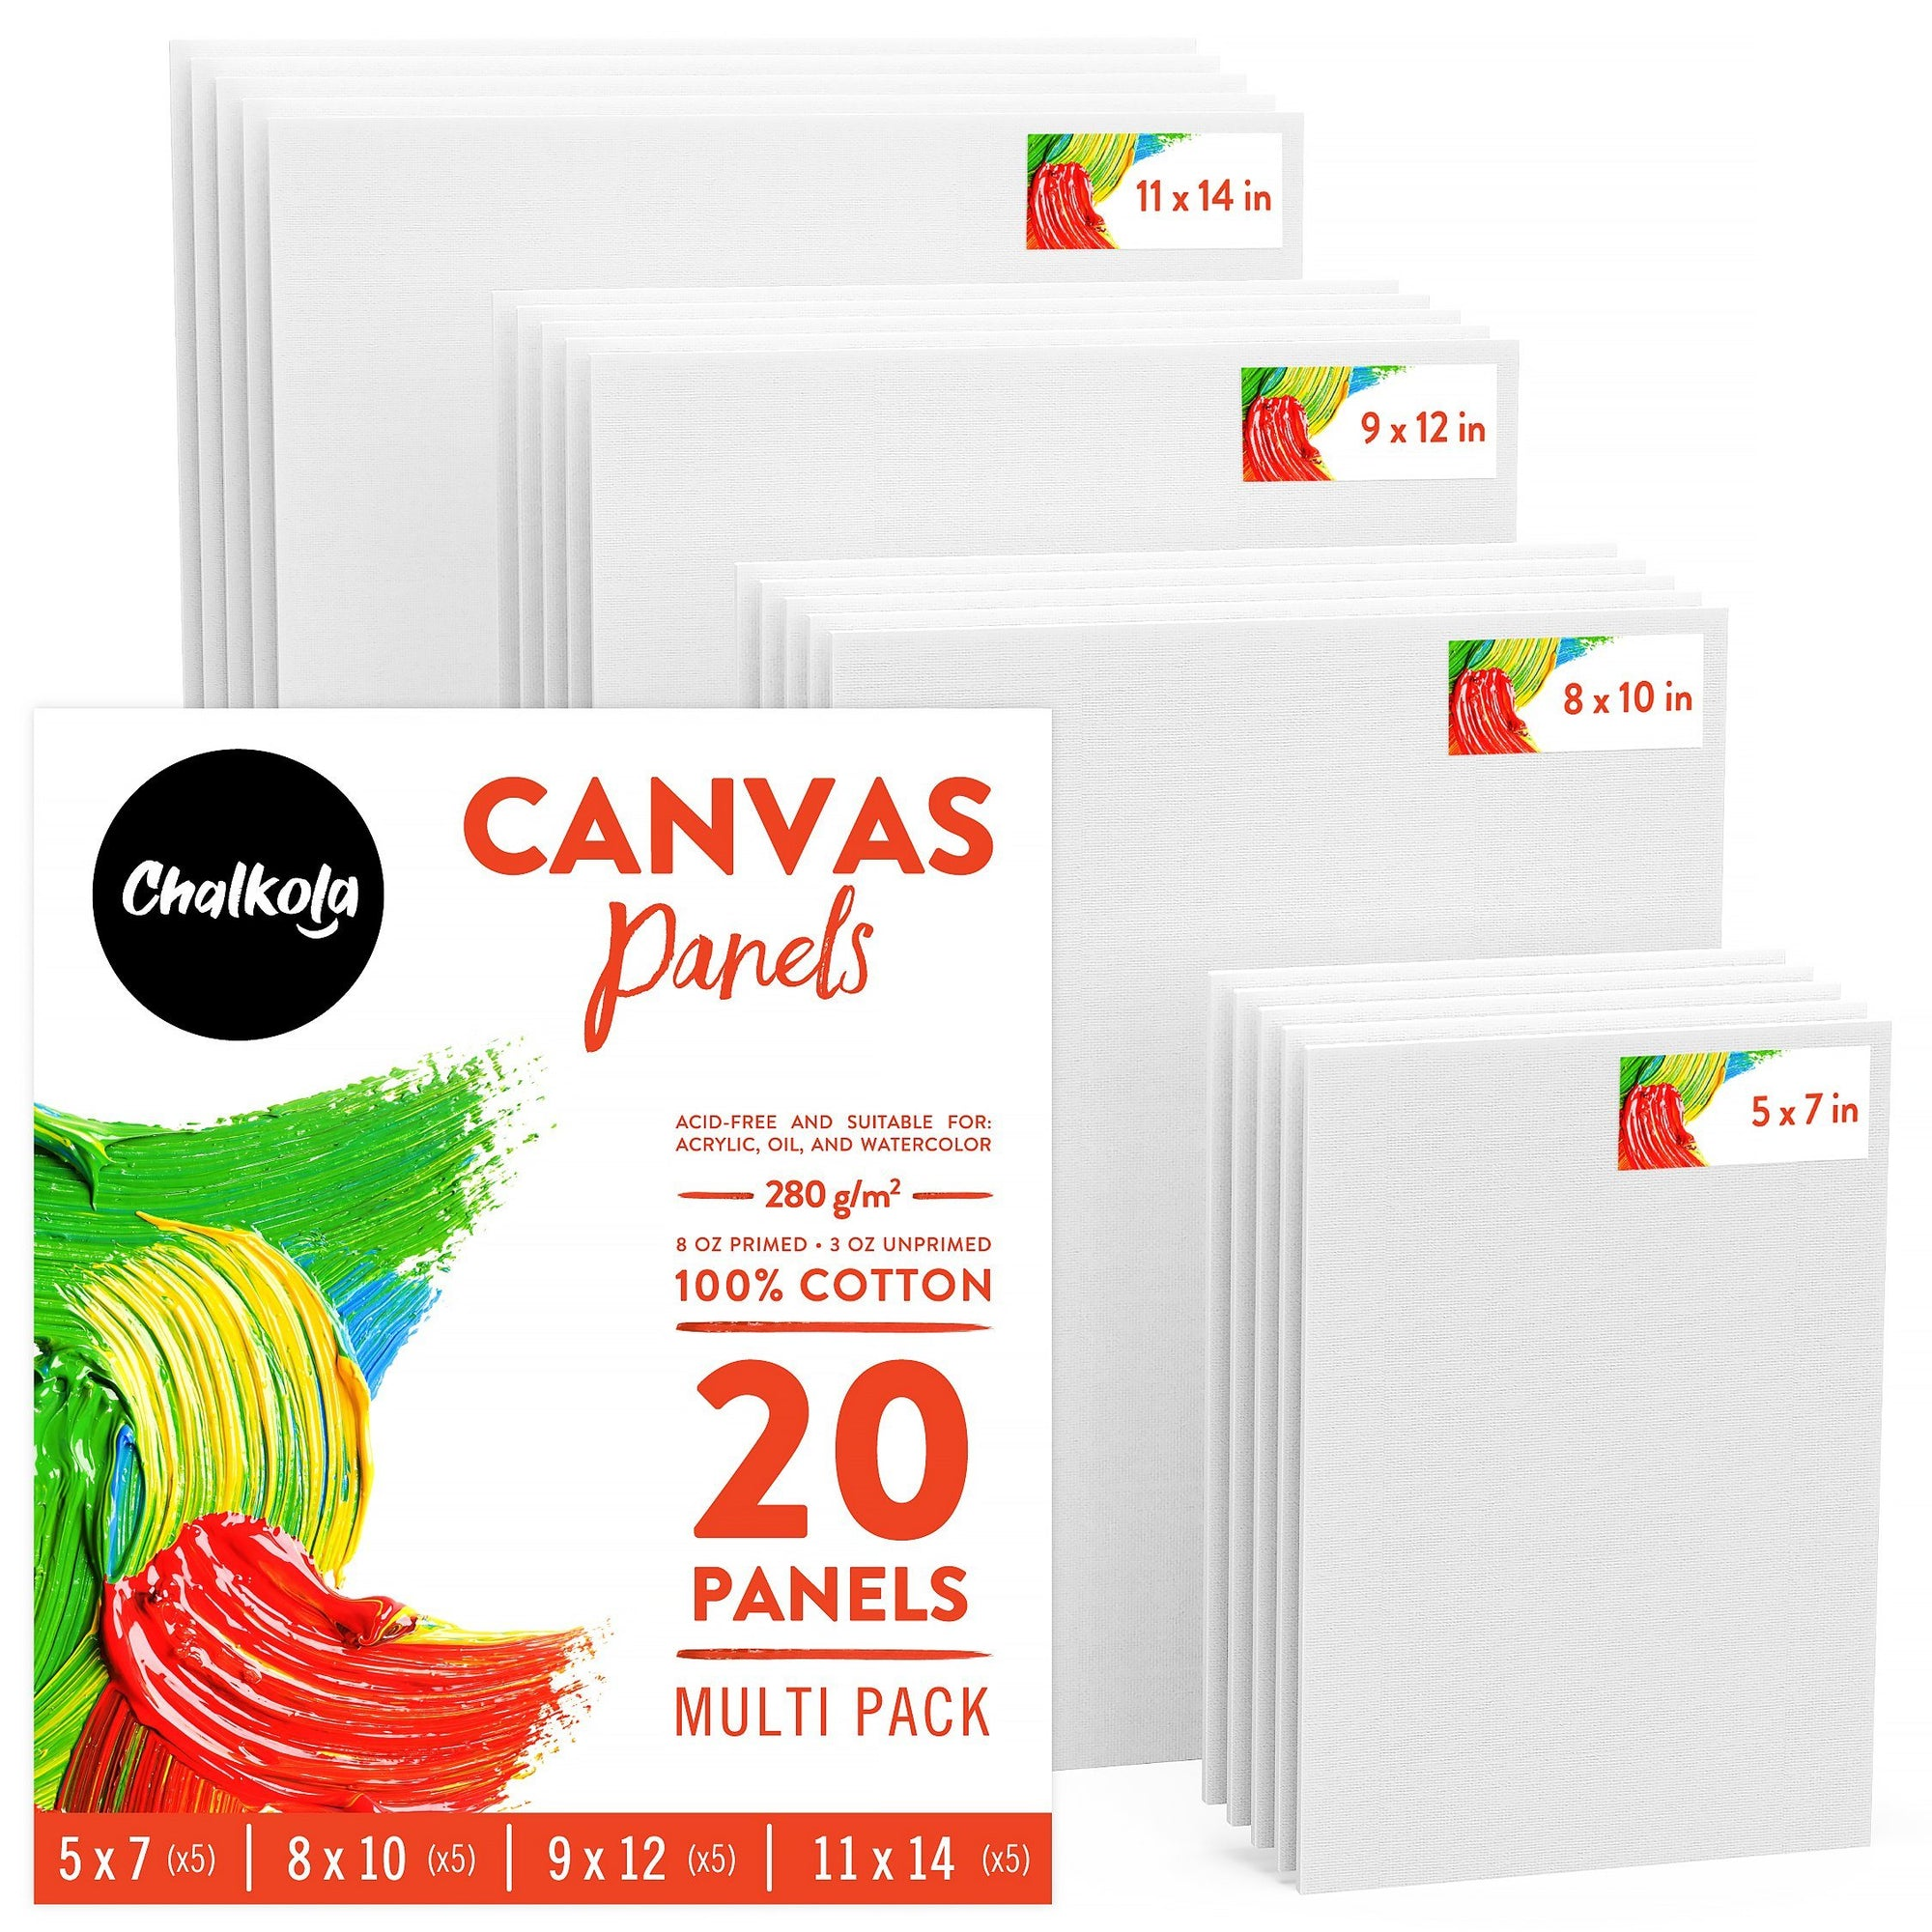 Painting Canvas Panels - 5x7, 8x10, 9x12, 11x14 inch (5 Each, 20 Pack)